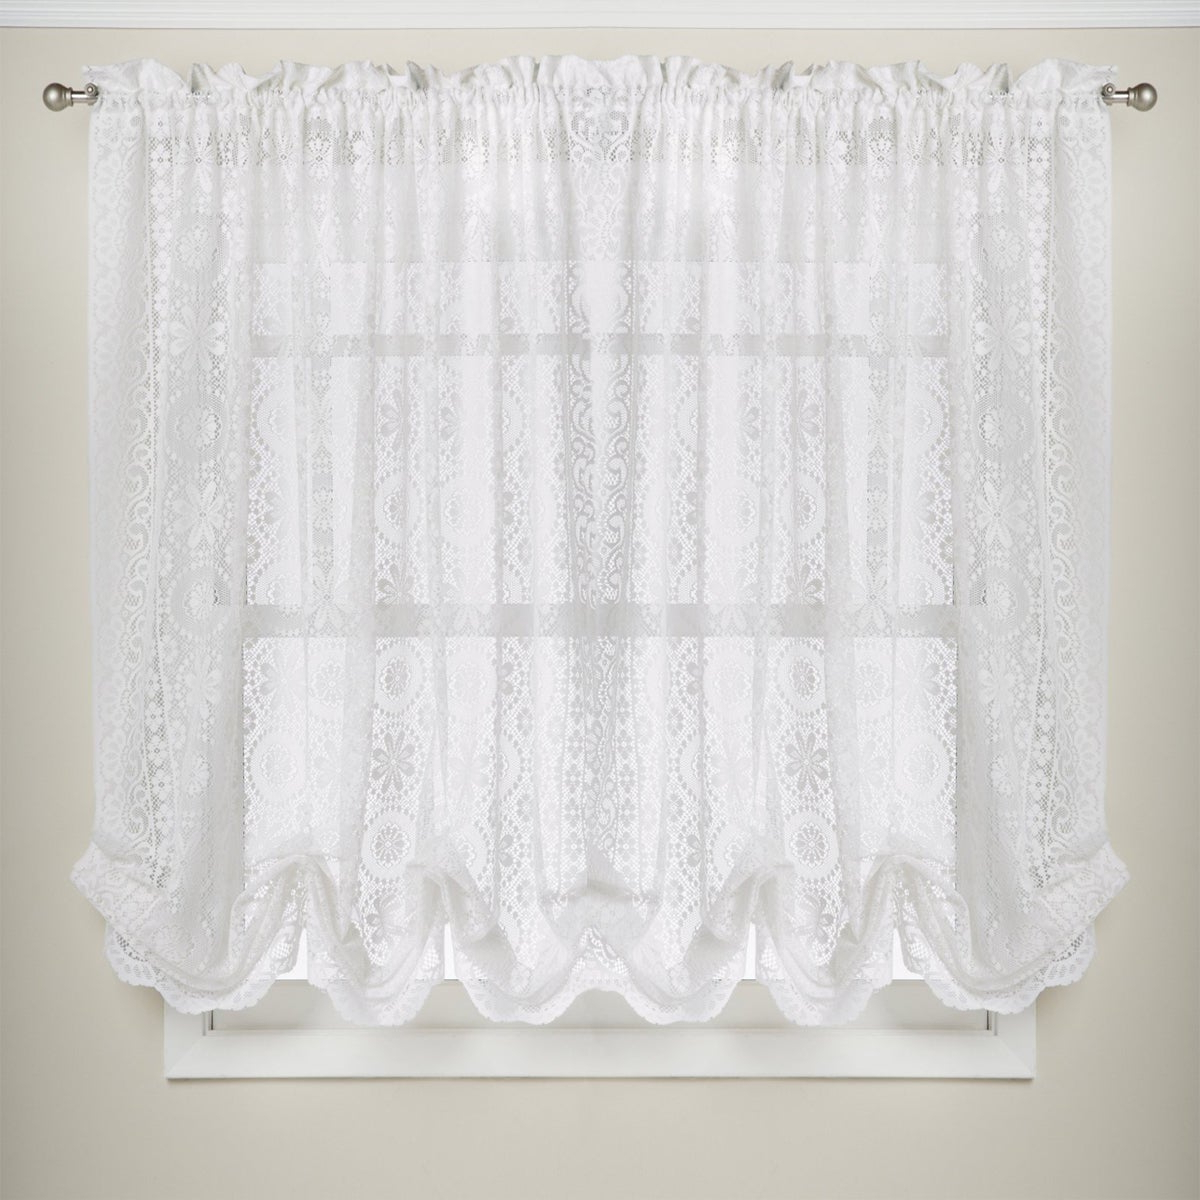 Recent White Lace Luxurious Old World Style Kitchen Curtains Tiers, Shade Or  Valances Regarding Luxurious Old World Style Lace Window Curtain Panels (Gallery 9 of 20)